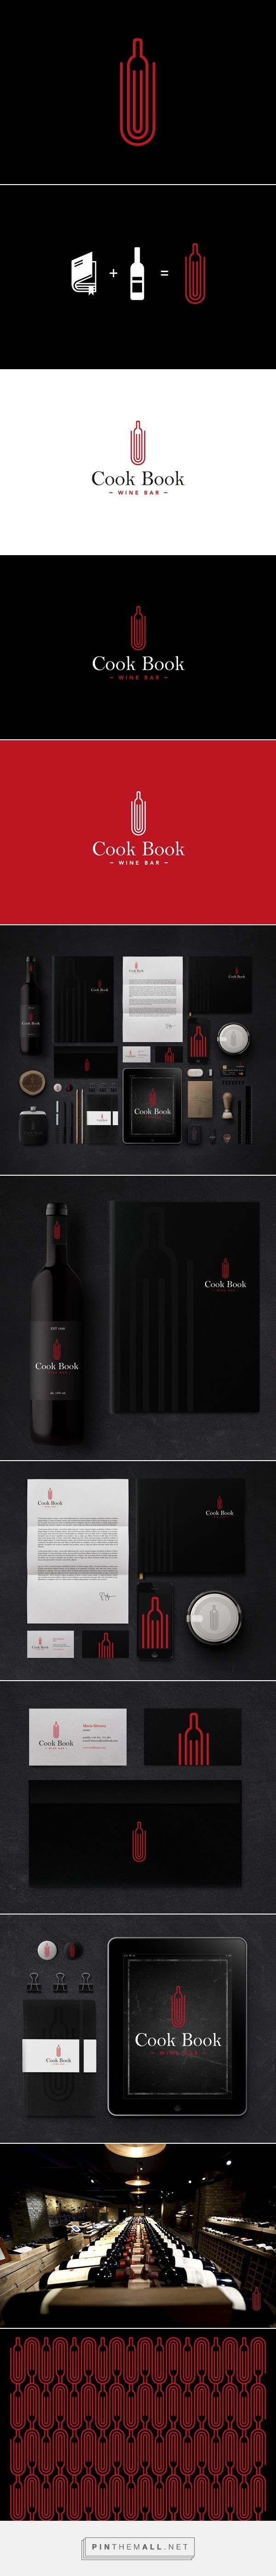 Cook Book Wine Bar On Behance By Sebastian Bednarek Curated By Packaging Diva Pd Eat Drink Graphic Design Logo Corporate Identity Design Branding Design Logo